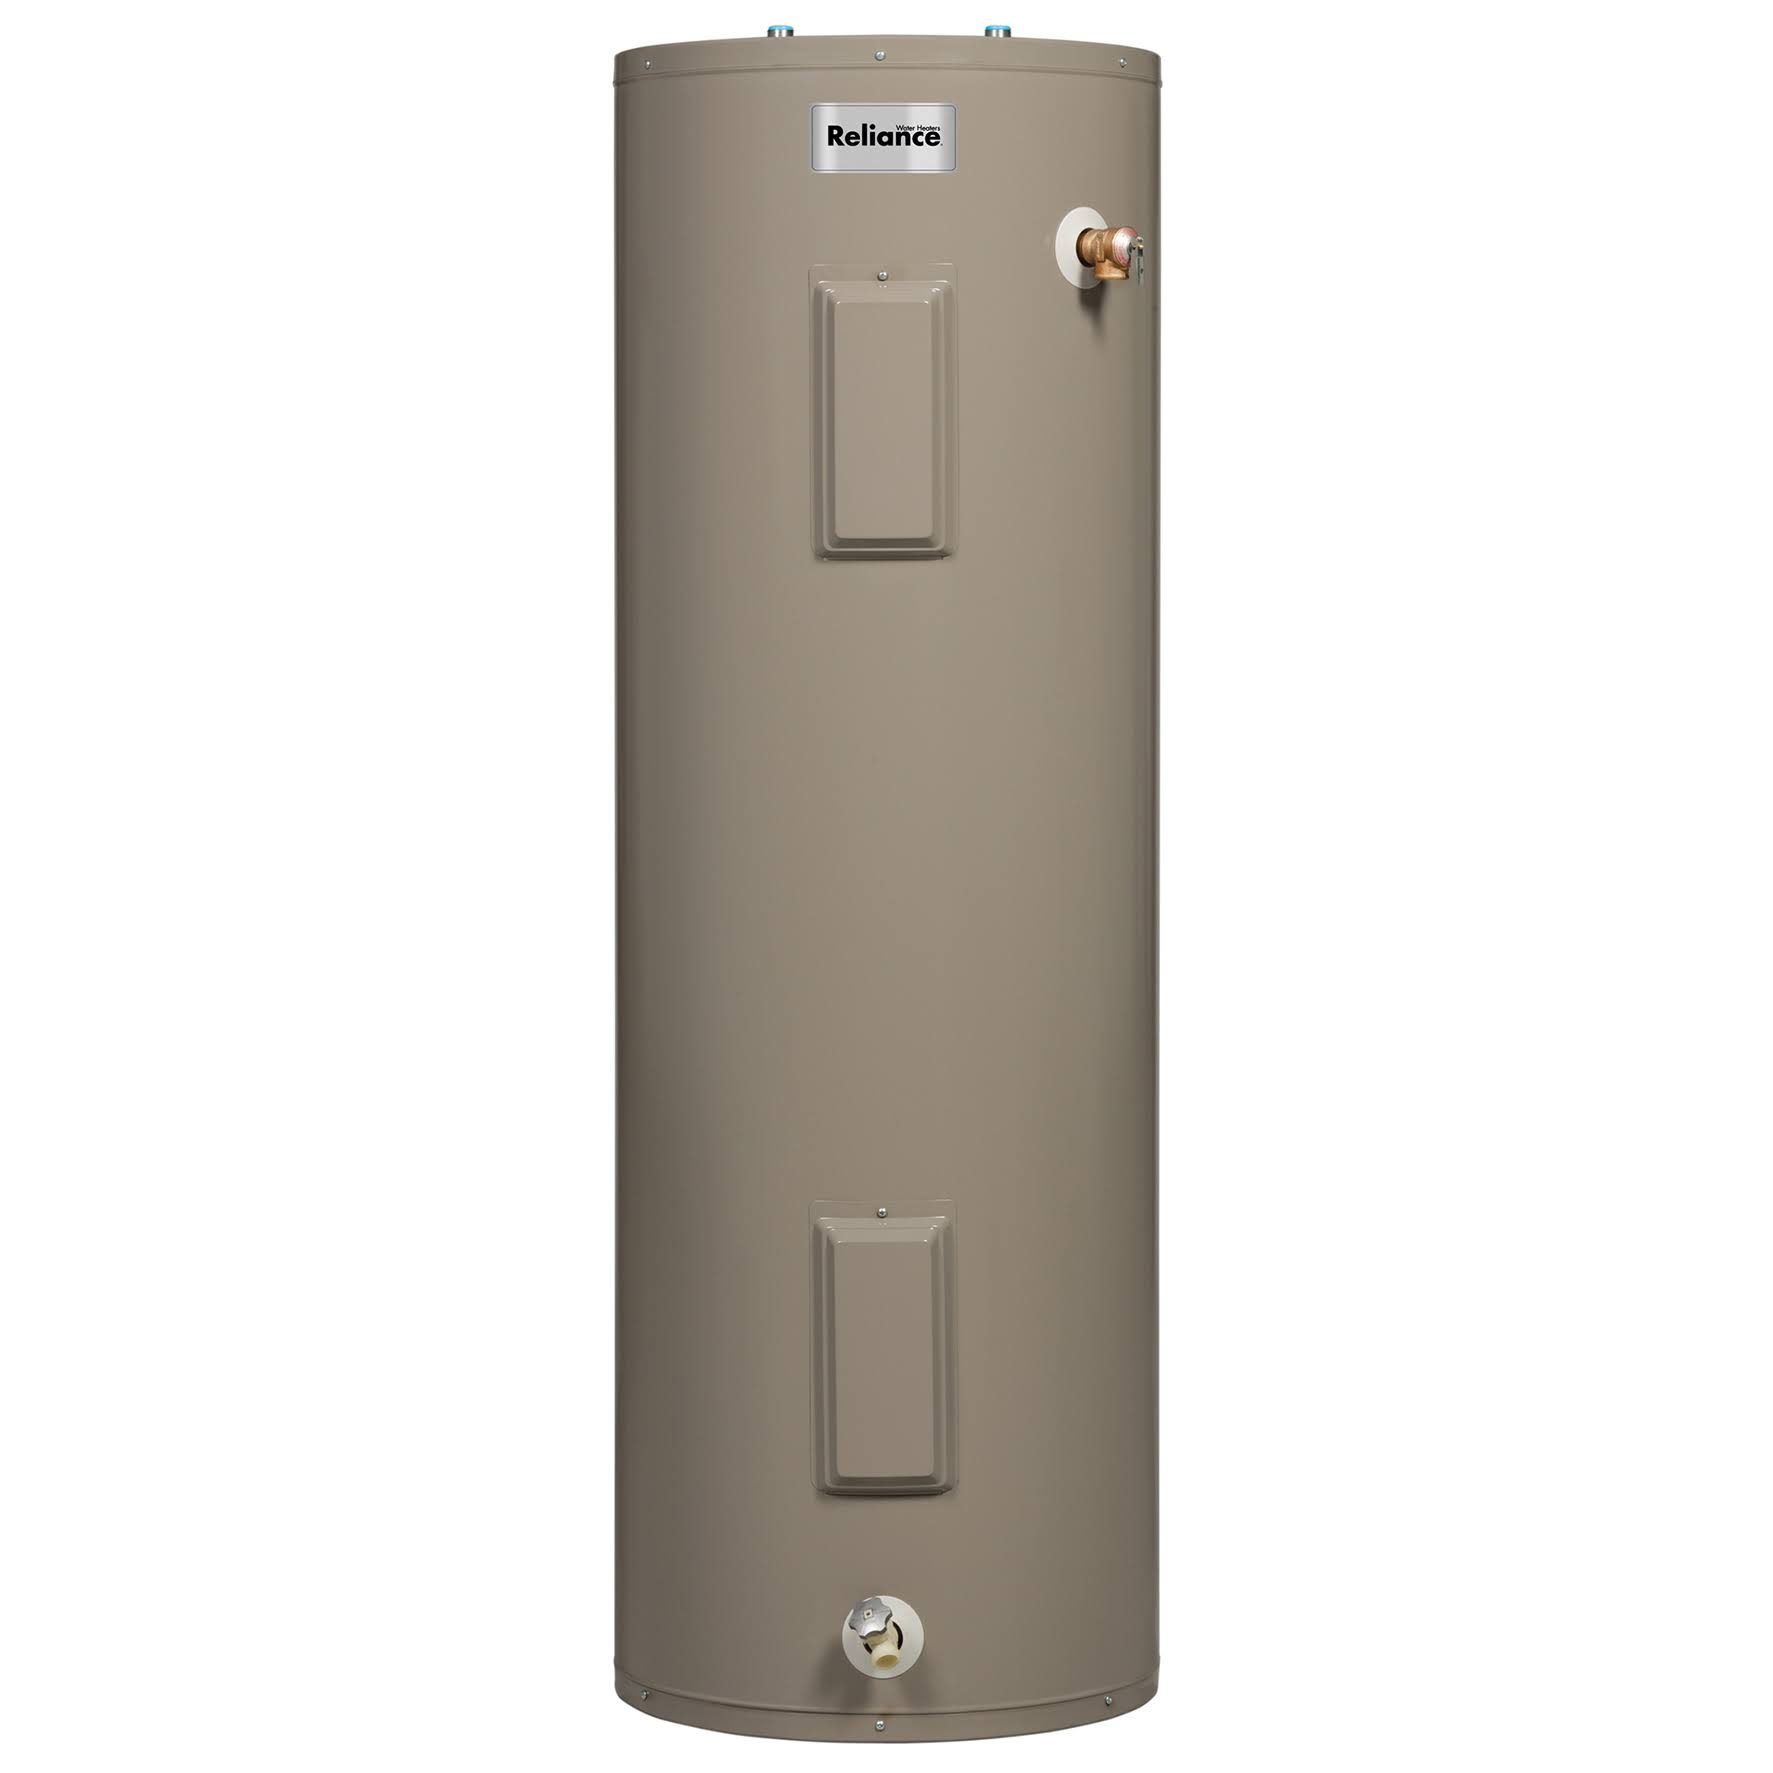 "Reliance Electric Water Heater - 46.75"", 30 Gal"